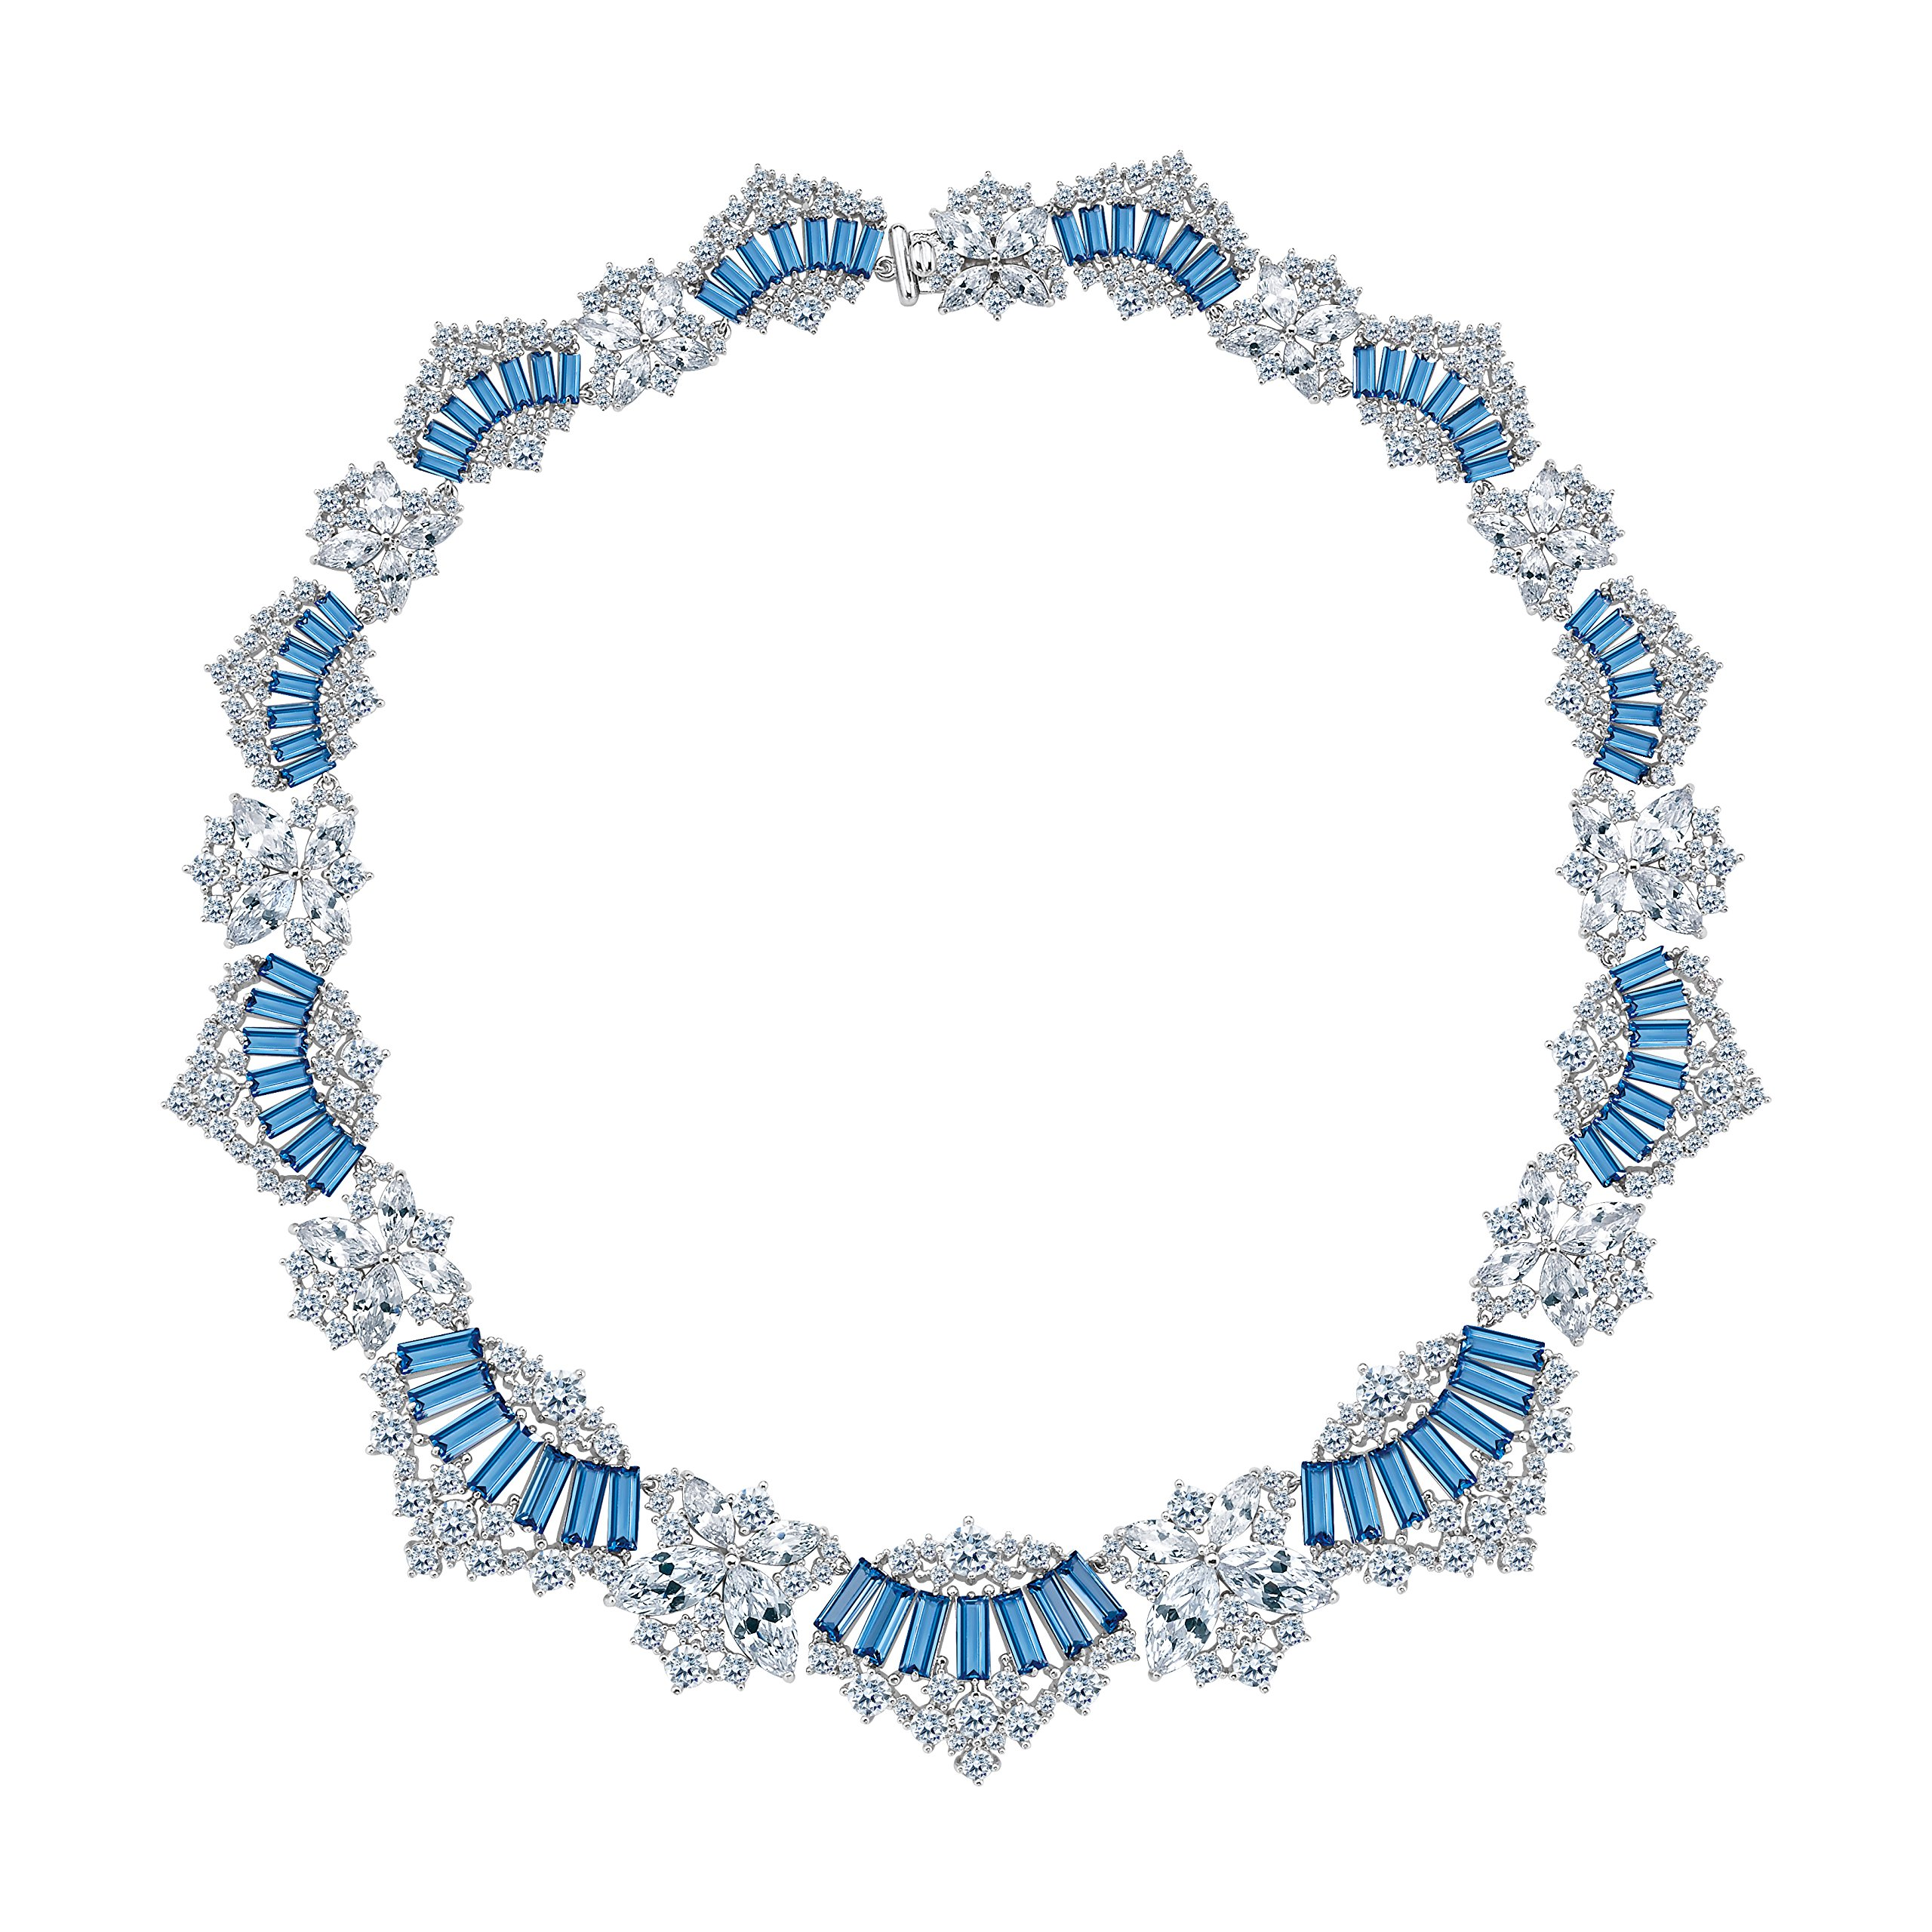 MIYUMIRO Women's Royal Ballerina Necklace - Royal Blue Collection